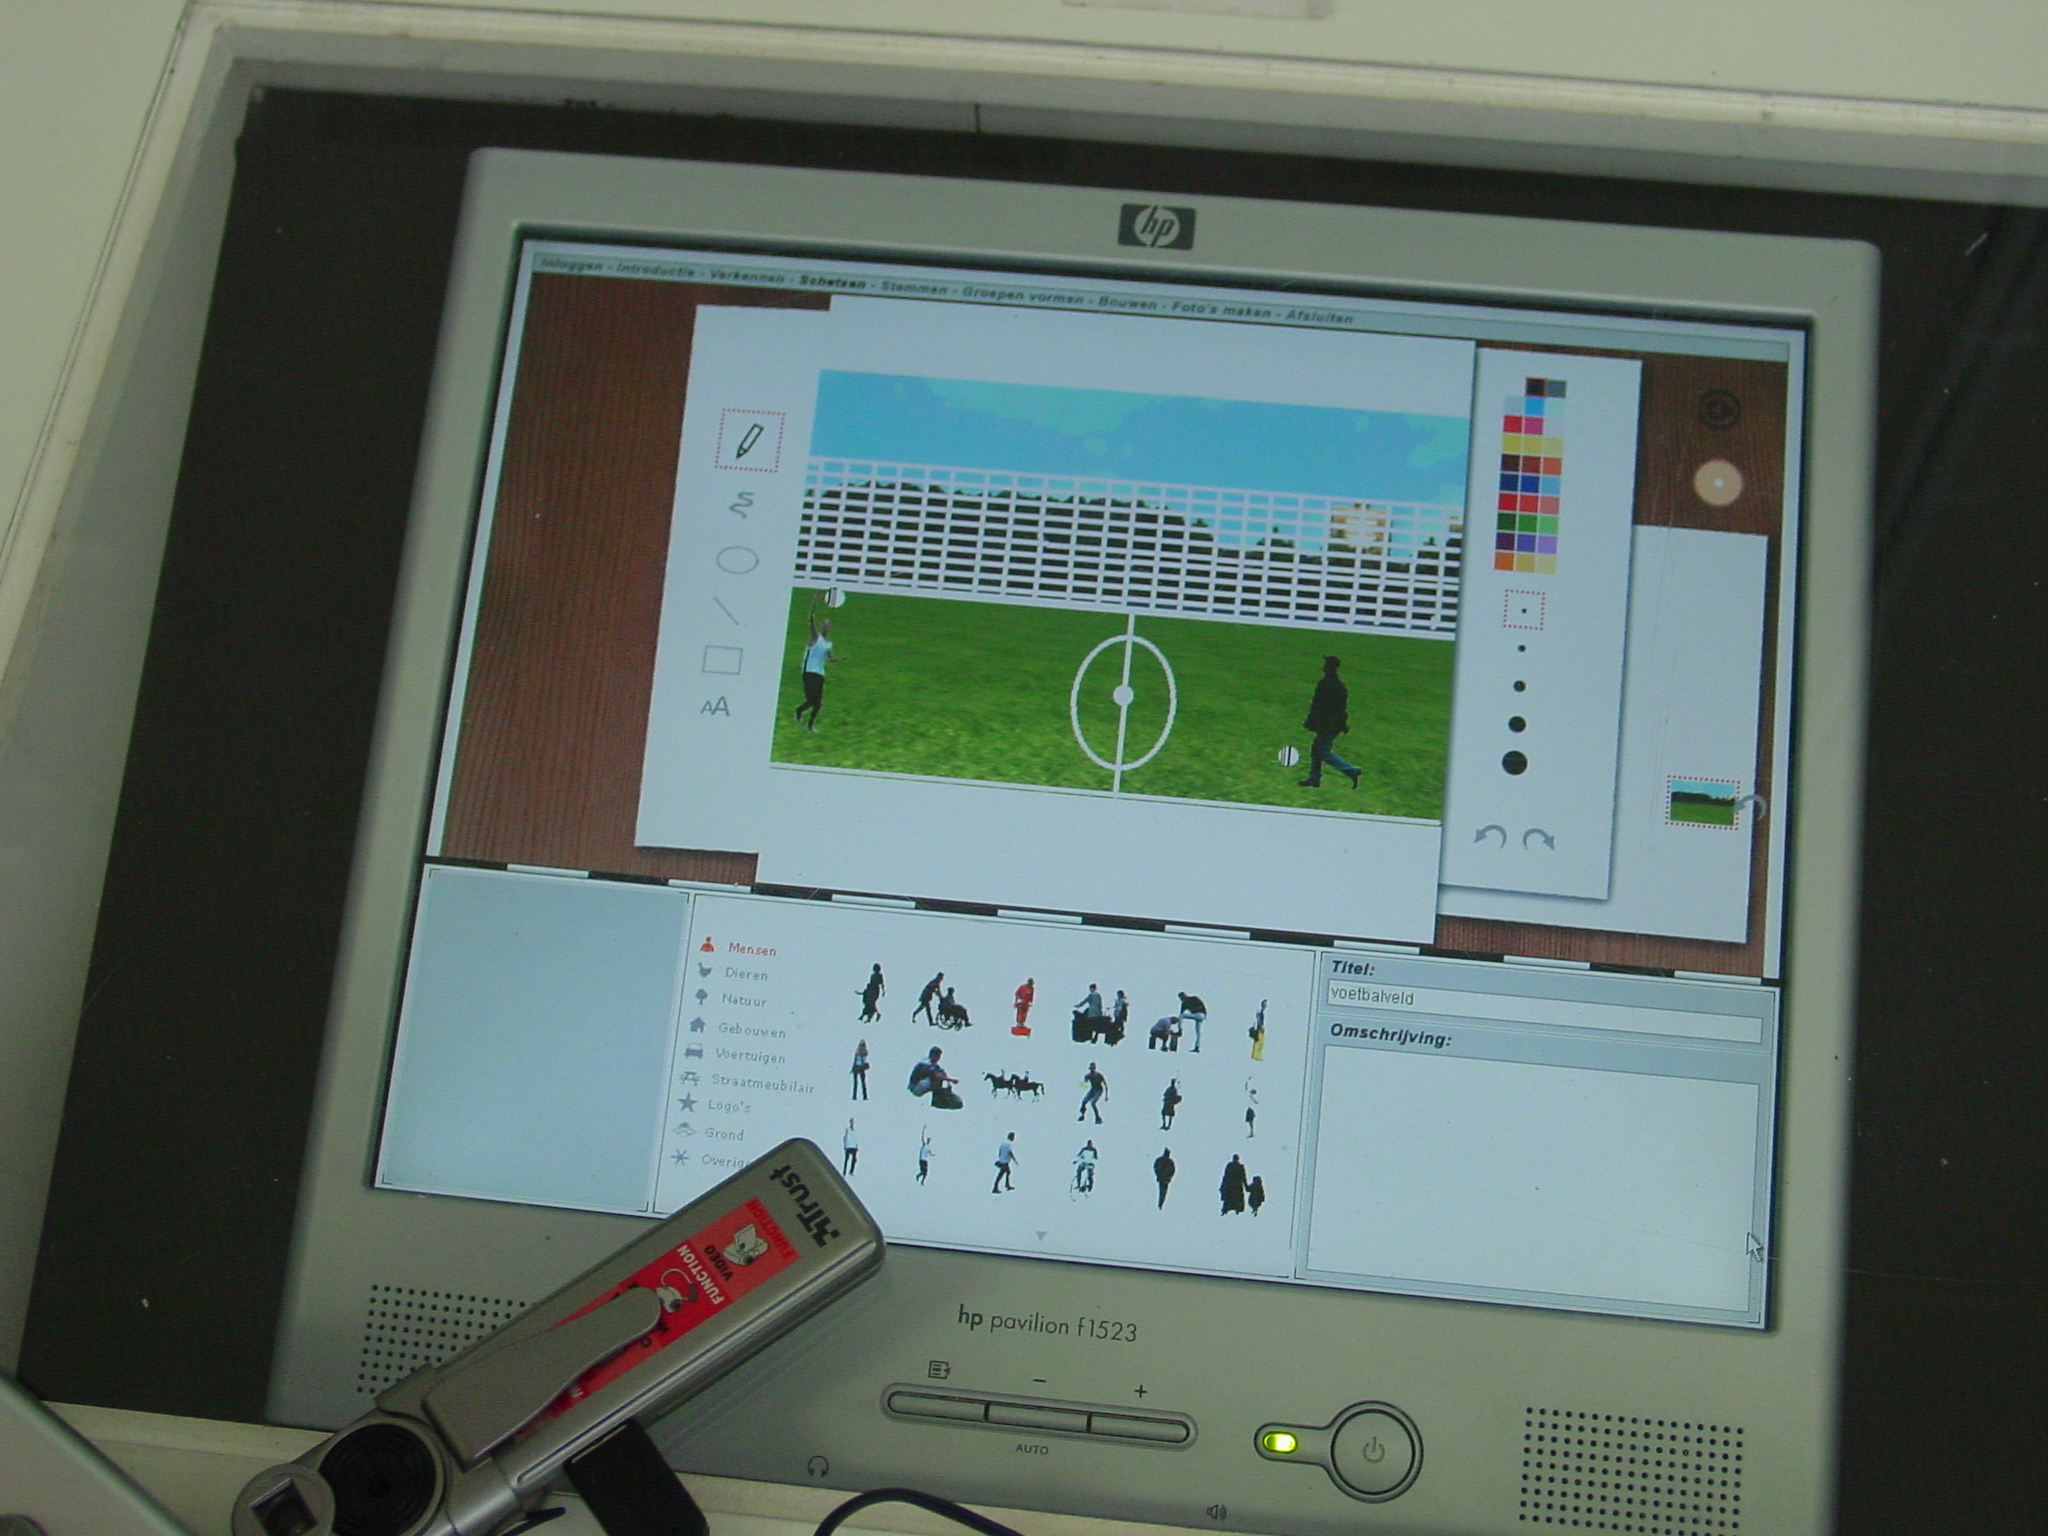 Interactor software in use